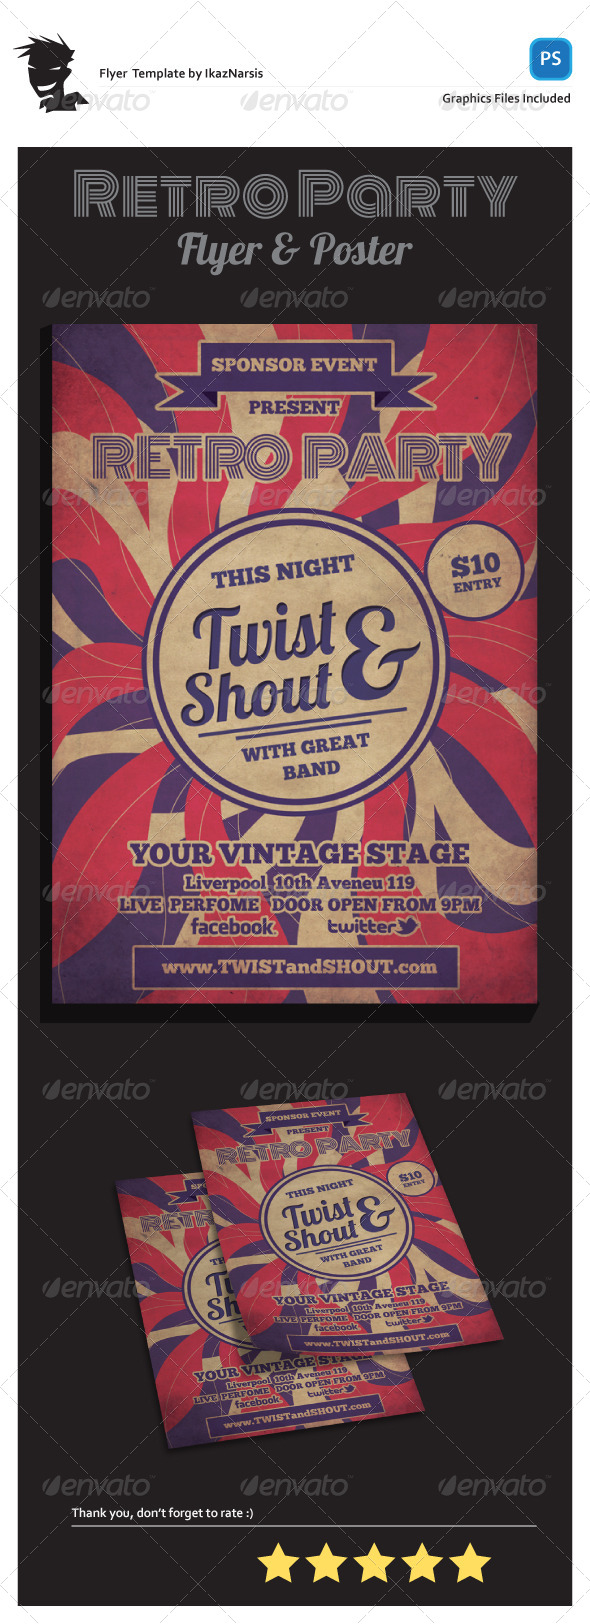 Twist and Shout Flyer Template - Events Flyers